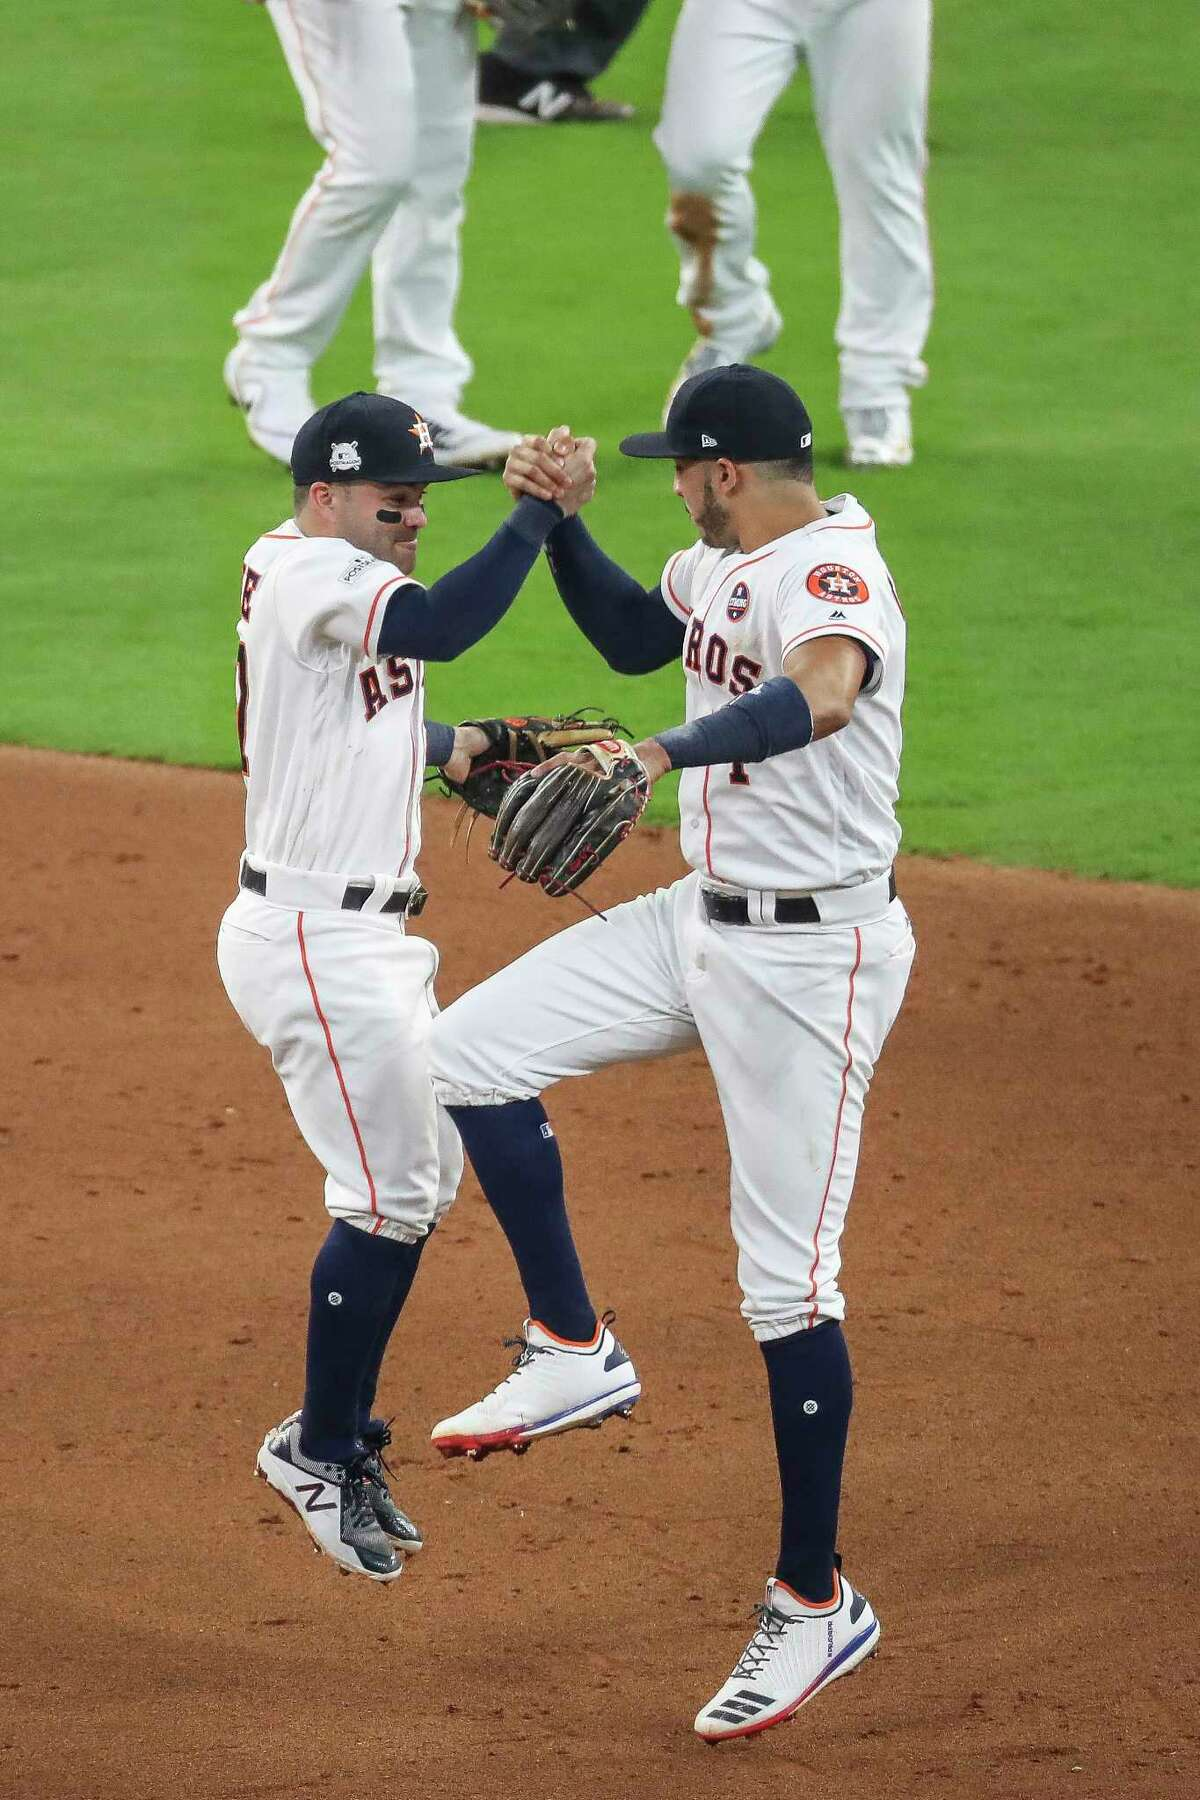 Houston Astros second baseman Jose Altuve and shortstop Carlos Correa celebrate after beating the Boston Red Sox 8-2 in the first game of the American League Divisional Series at Minute Maid Park Thursday, Oct. 5, 2017 in Houston.